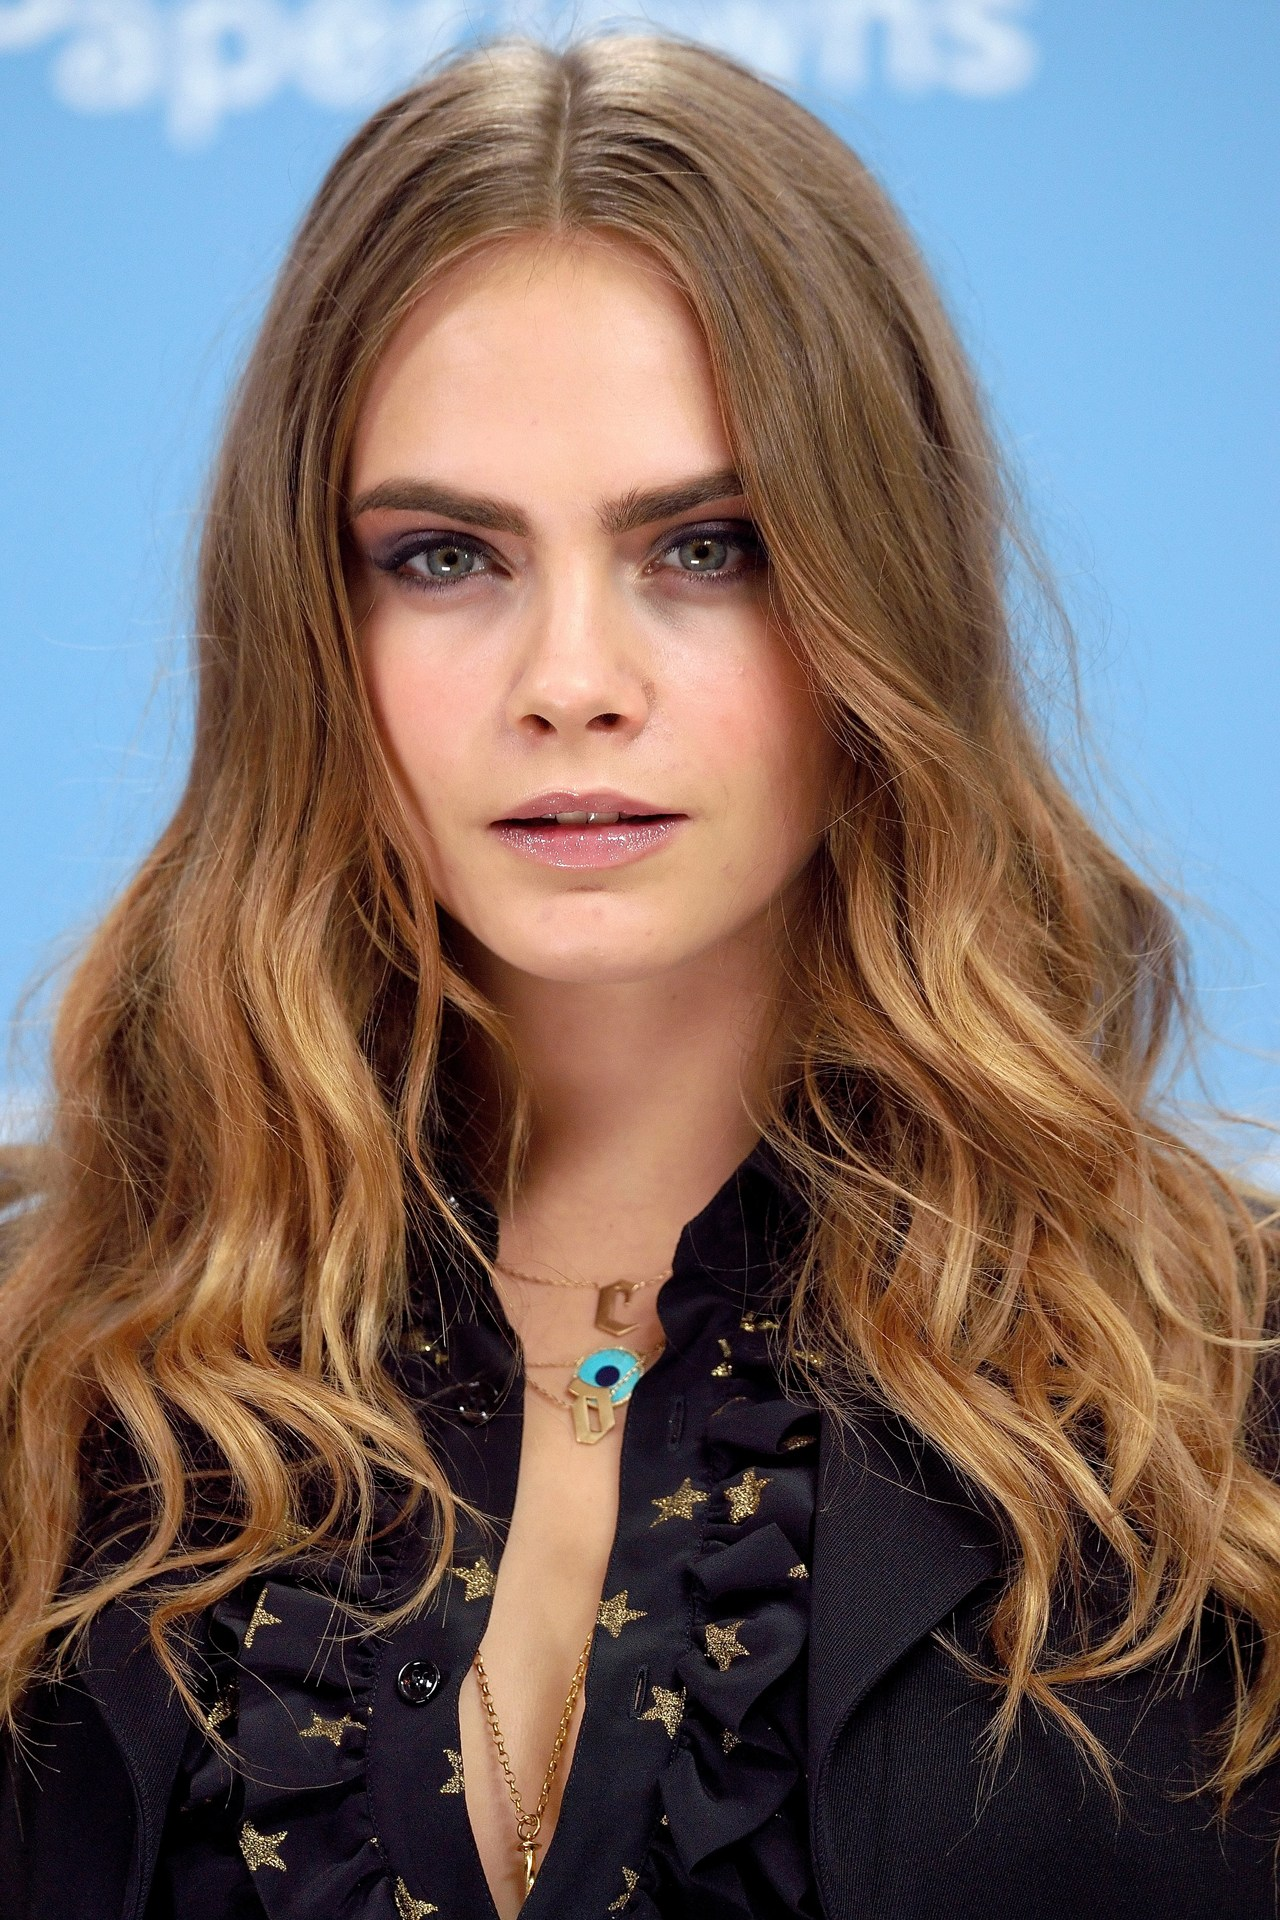 cara delevingne ростcara delevingne vk, cara delevingne puma, cara delevingne 2017, cara delevingne wallpaper, cara delevingne tattoo, cara delevingne wiki, cara delevingne style, cara delevingne tumblr, cara delevingne height, cara delevingne 2016, cara delevingne interview, cara delevingne insta, cara delevingne фото, cara delevingne and annie clark, cara delevingne фильмы, cara delevingne рост, cara delevingne movies, cara delevingne beatbox, cara delevingne st vincent, cara delevingne sister